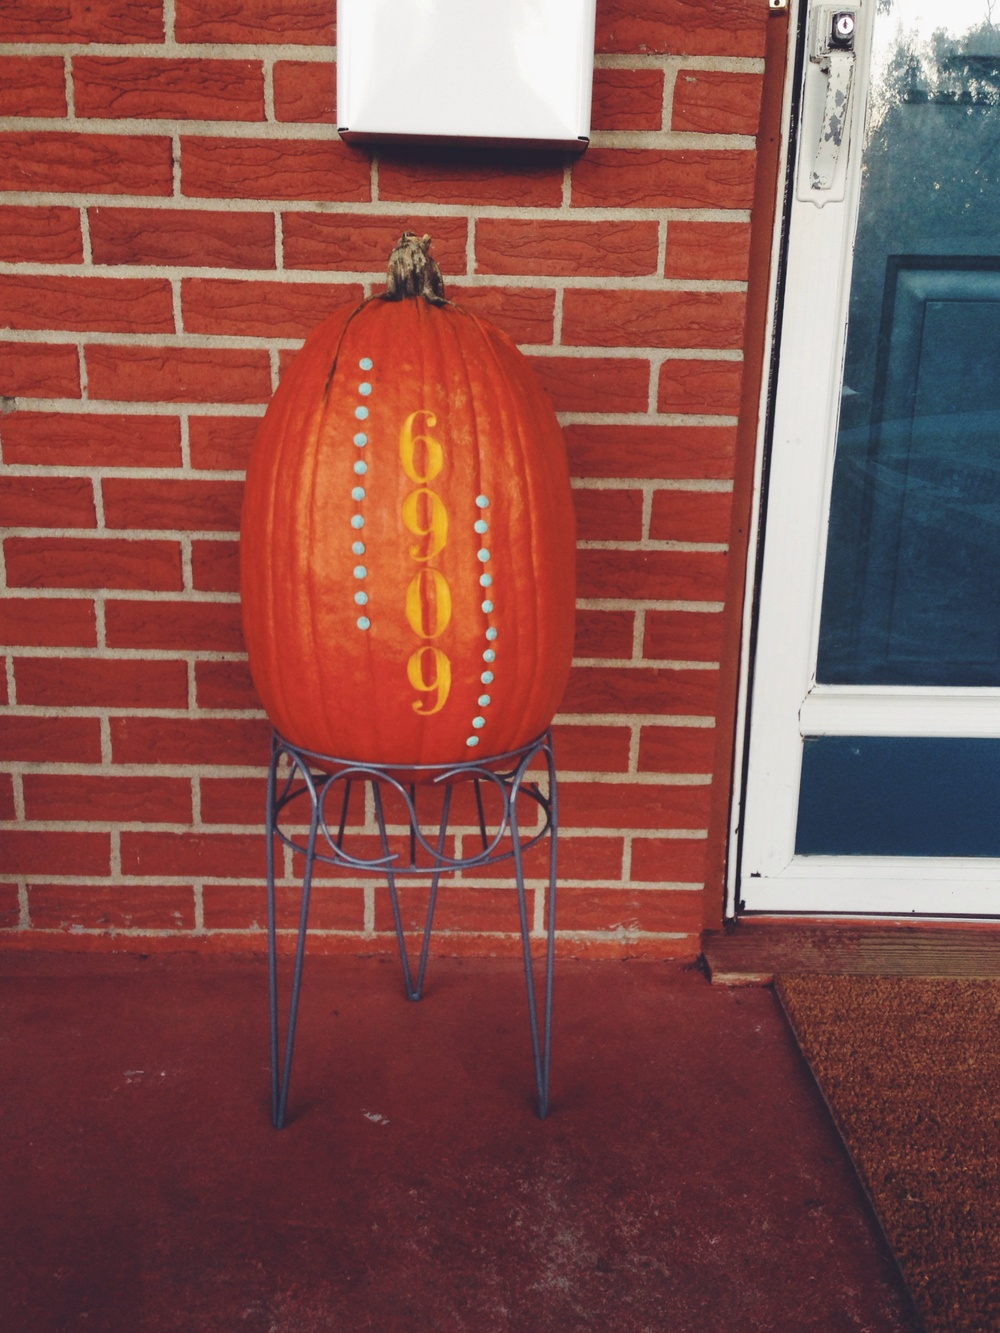 House Number Pumpkin + Repurposed Plant Stand for Fall. Click through for the tutorial.